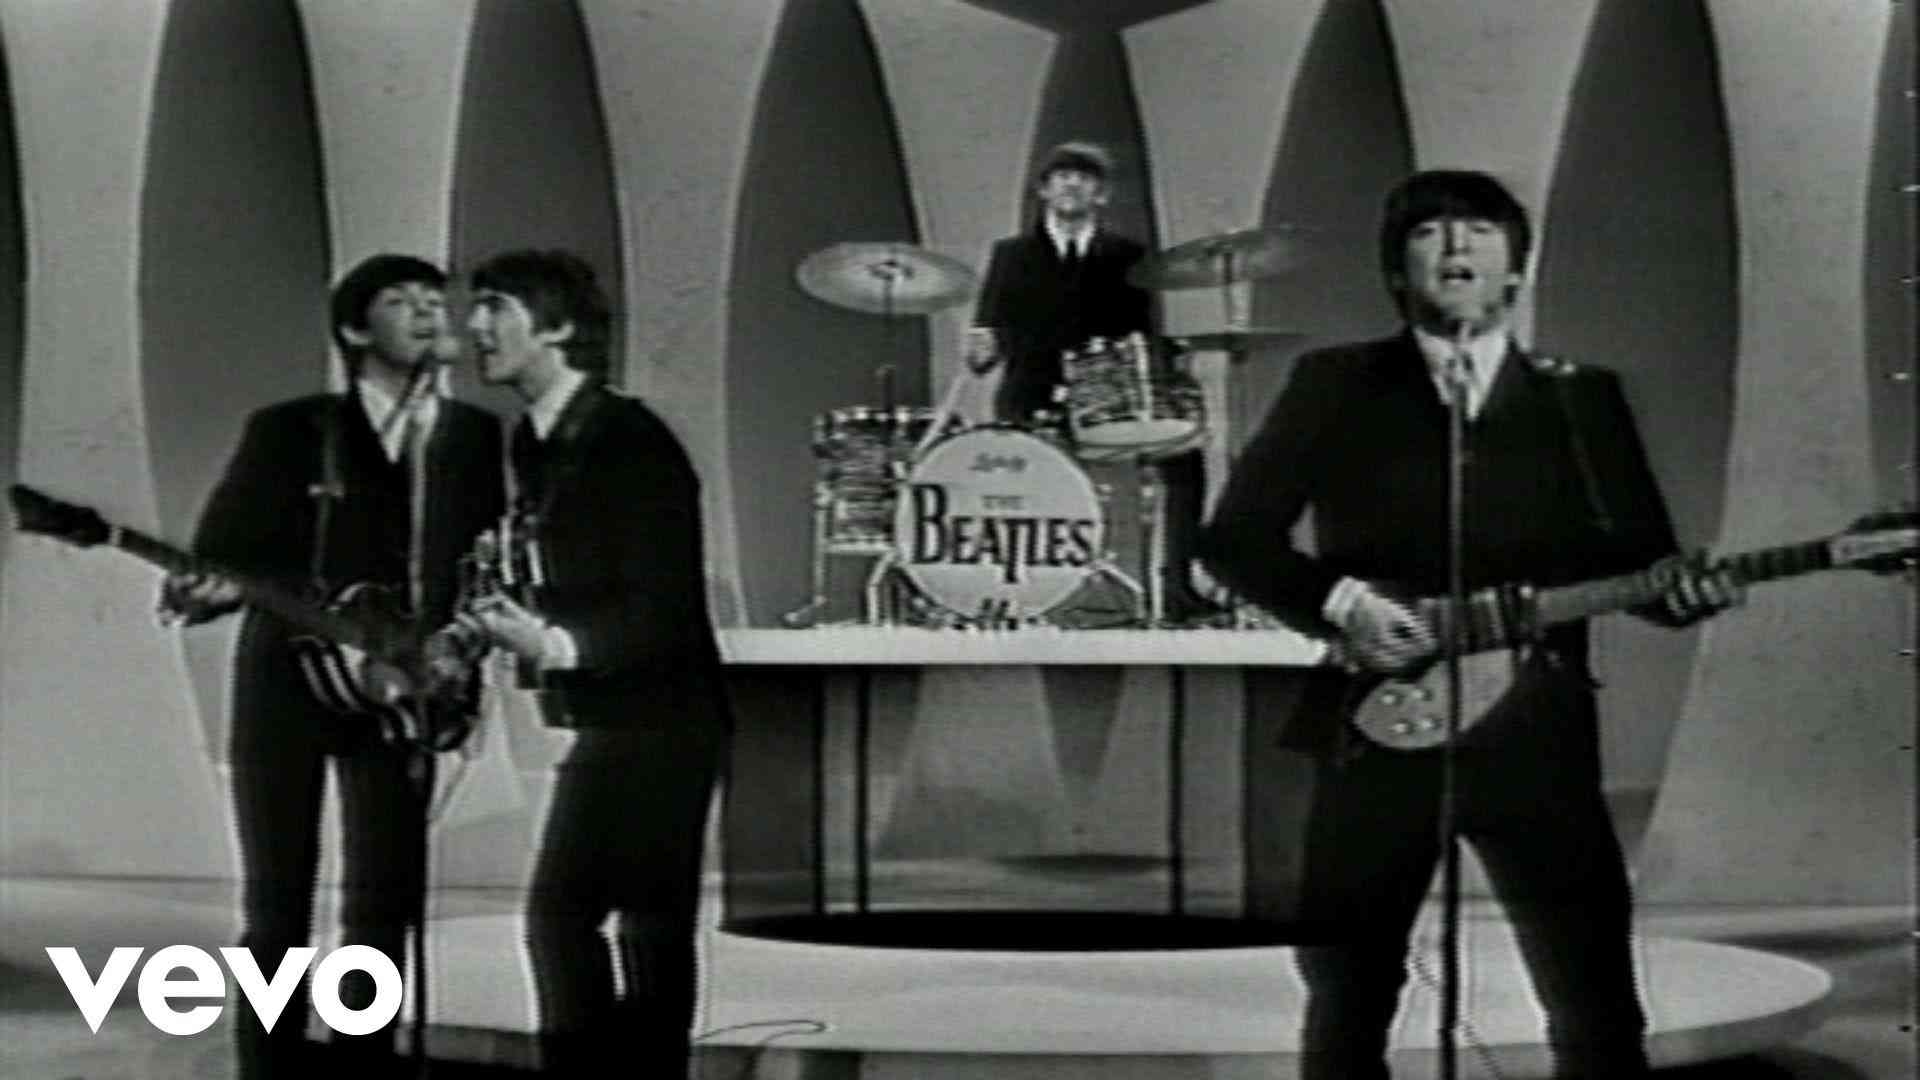 The Beatles - Twist & Shout - Performed Live On The Ed Sullivan Show 2/23/64 - YouTube